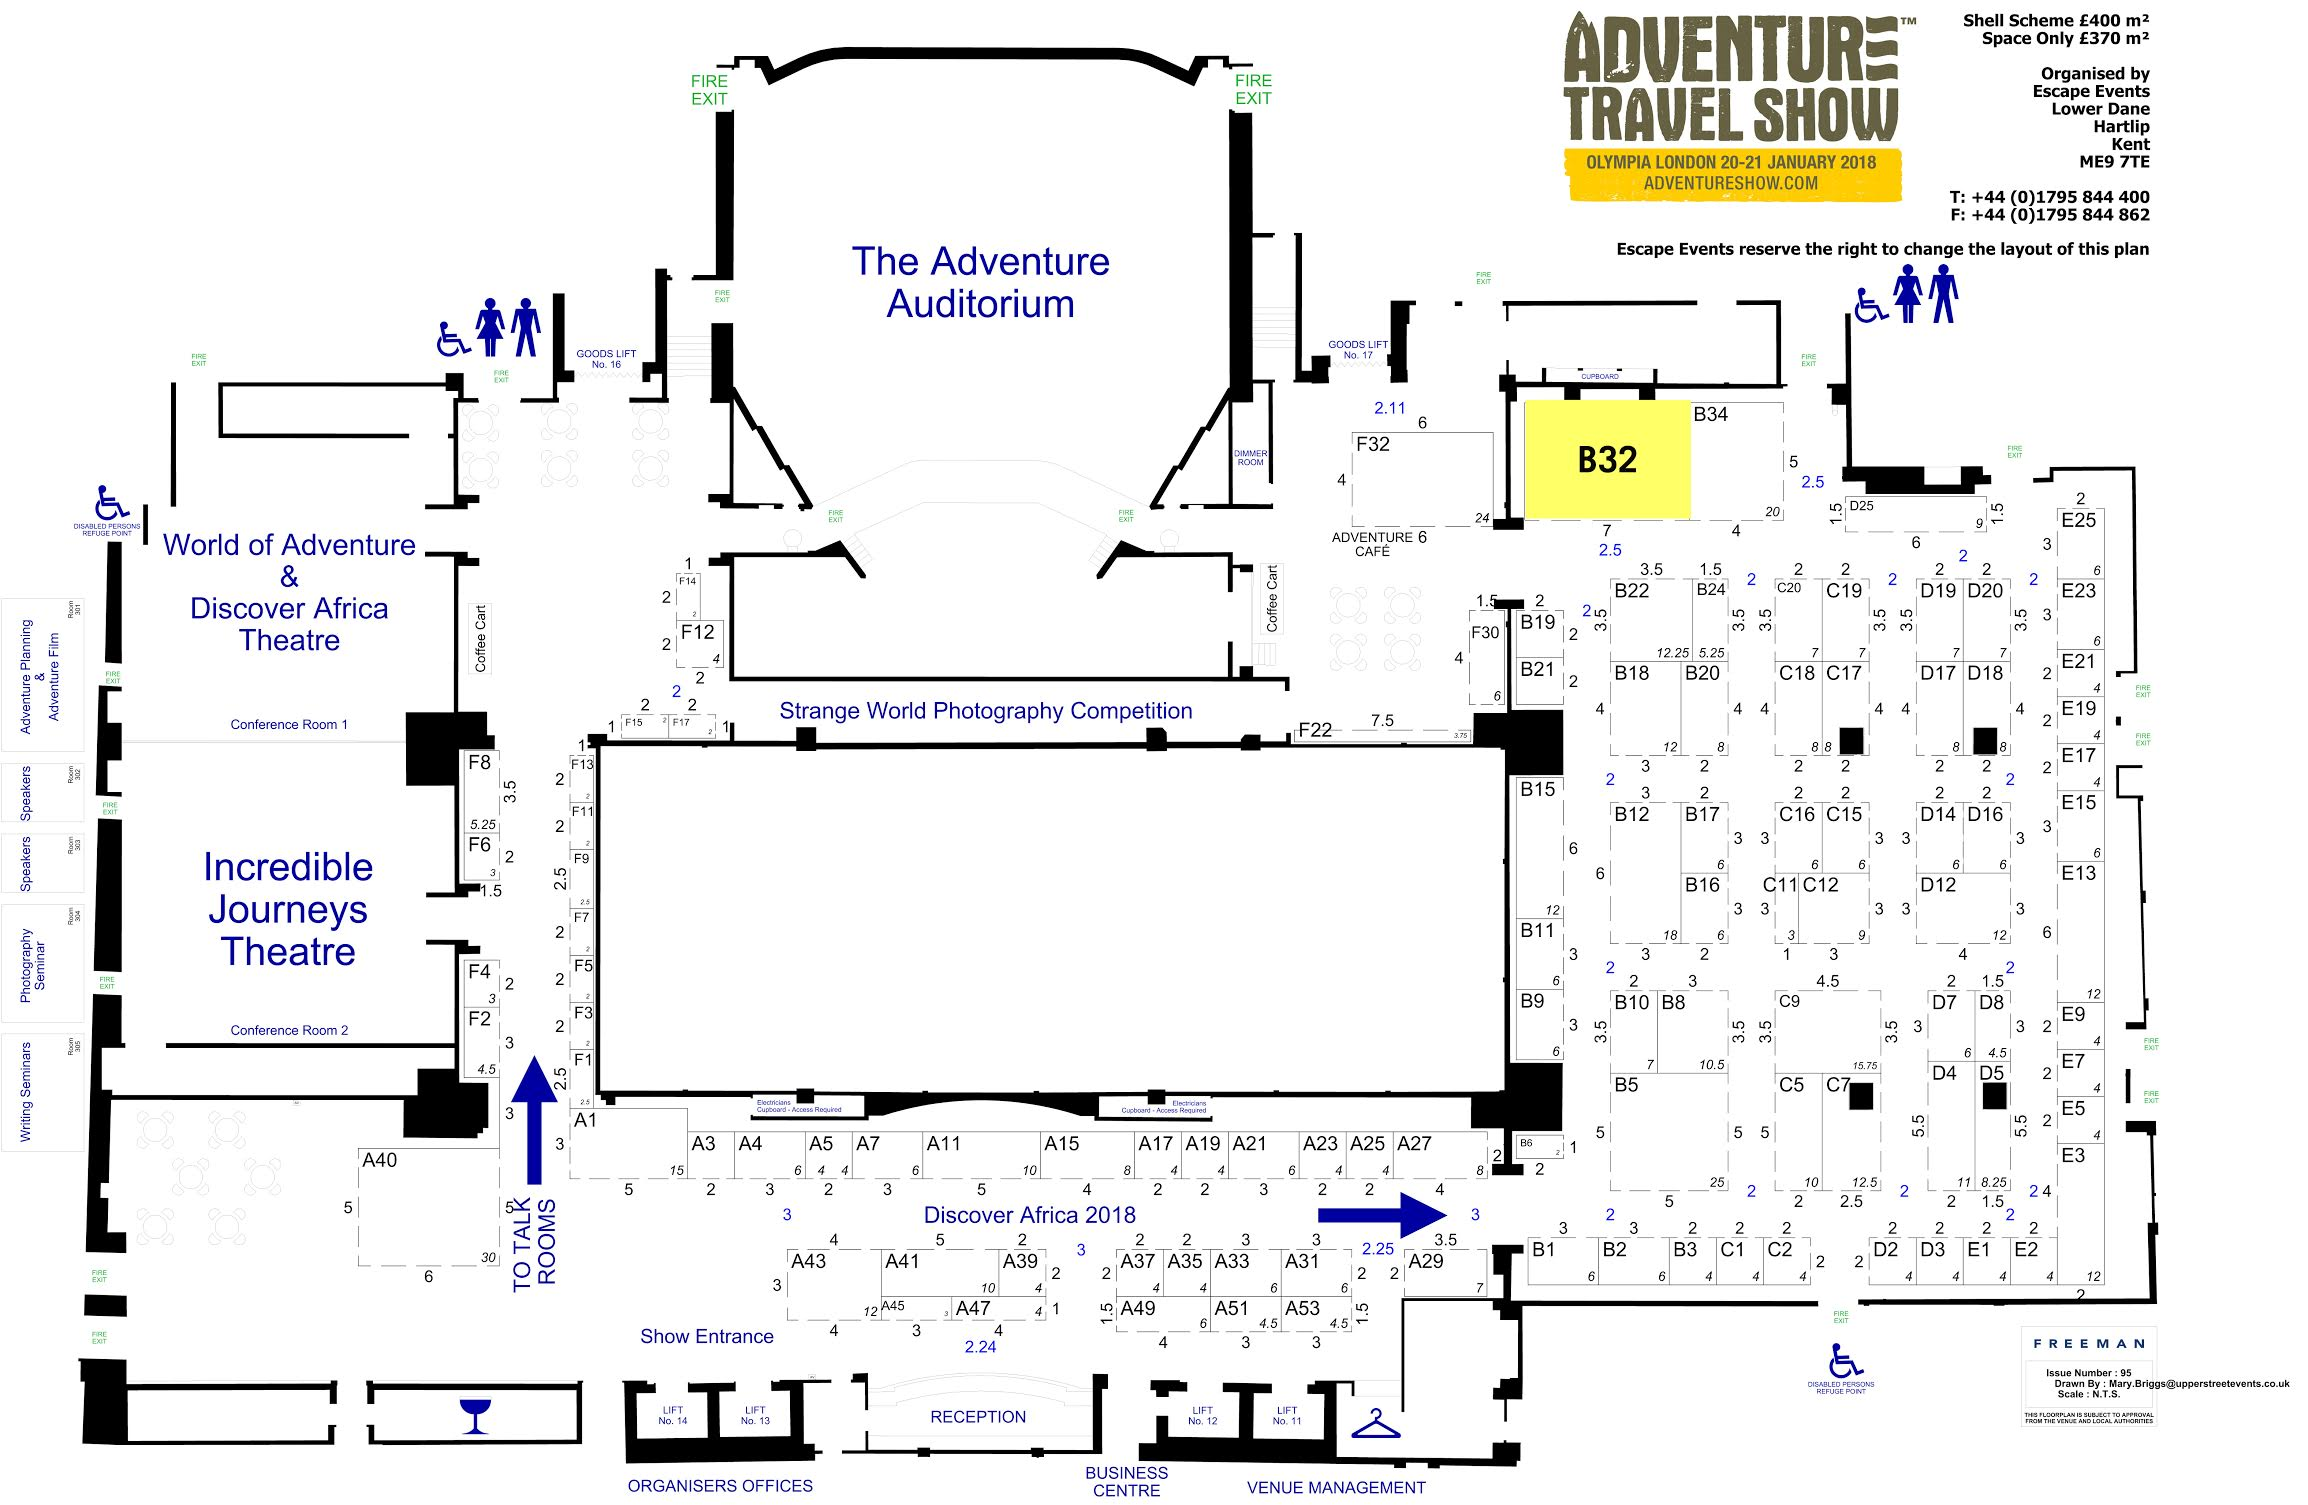 Adventure Travel Show Floor Plan 2018